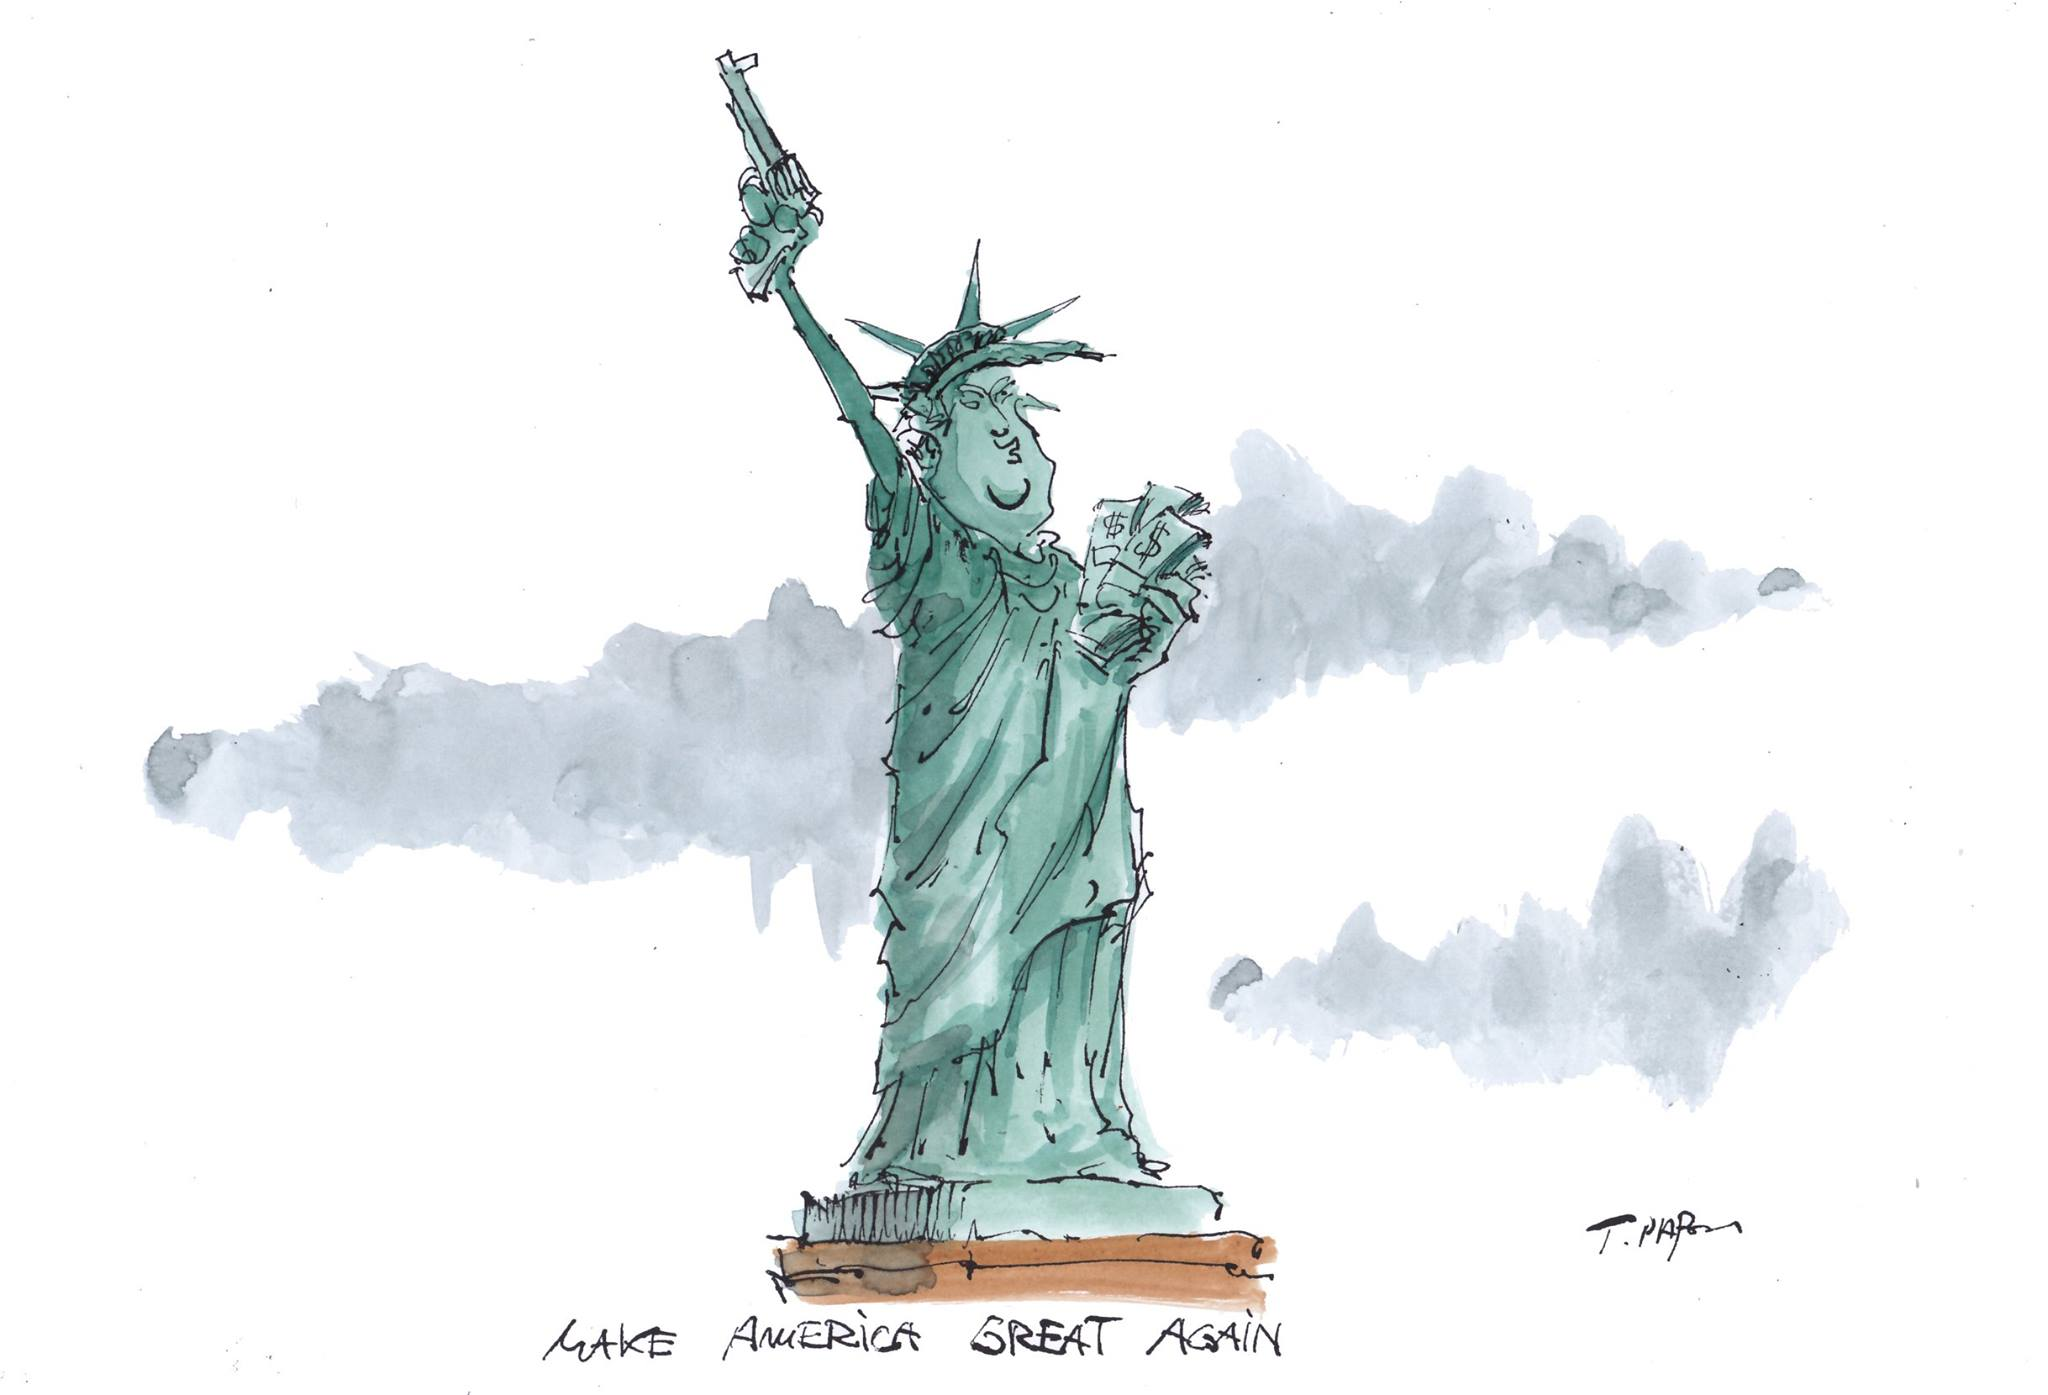 087-01-america-great-again